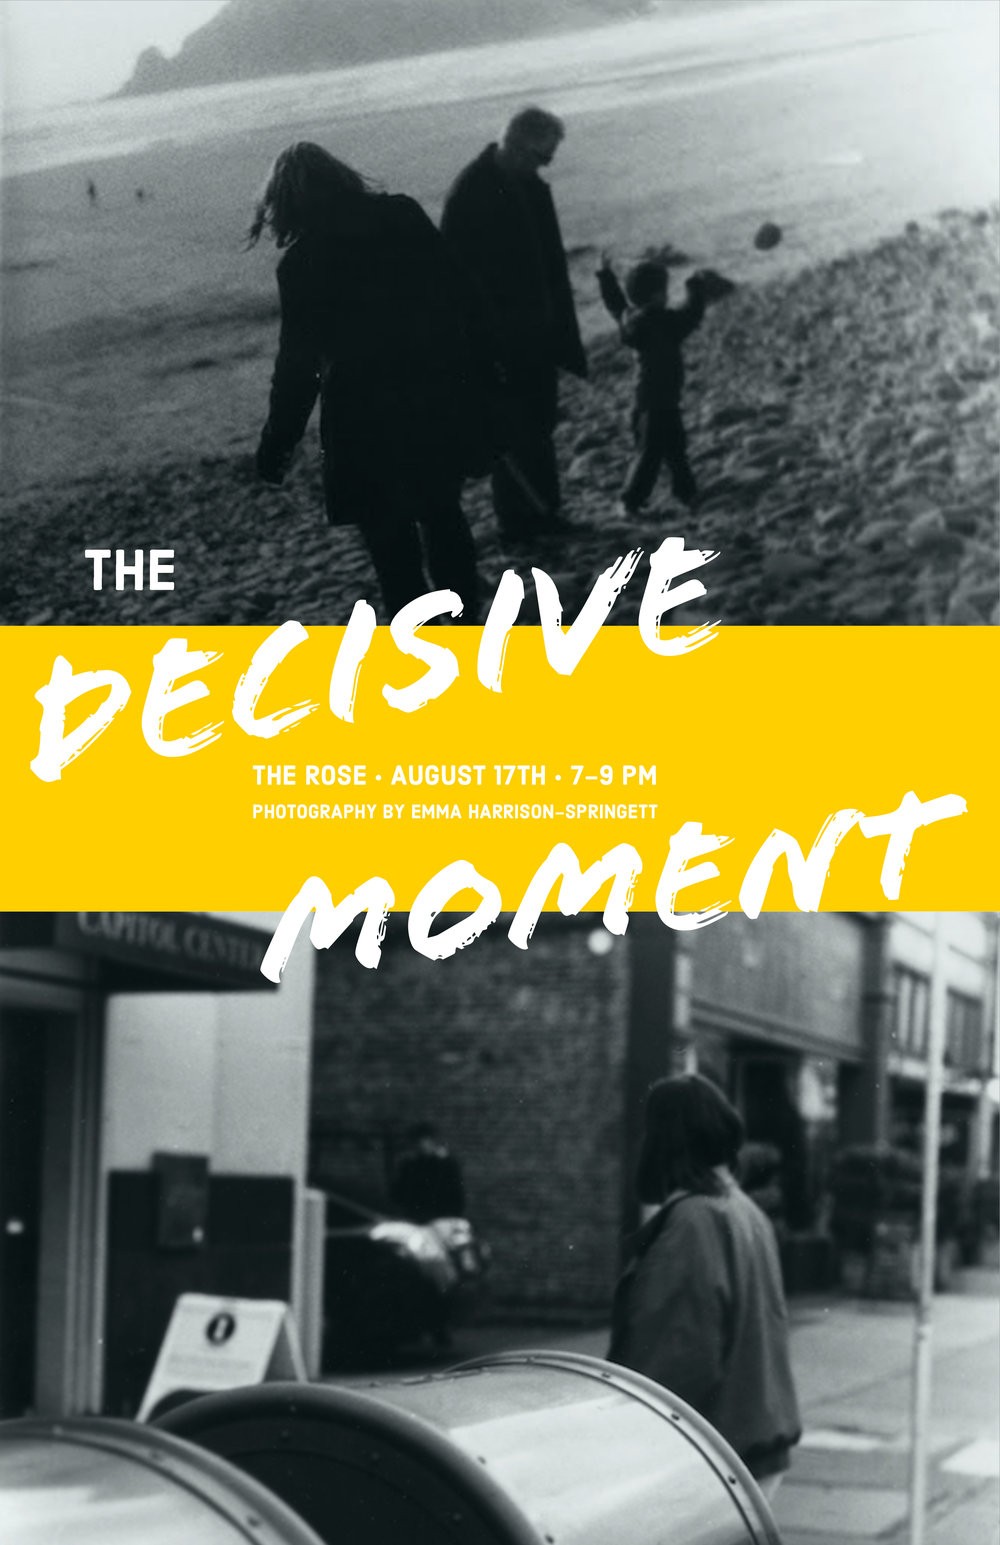 The Decisive Moment - August 17th • 7-9 pm • The Rose Jackson Hole